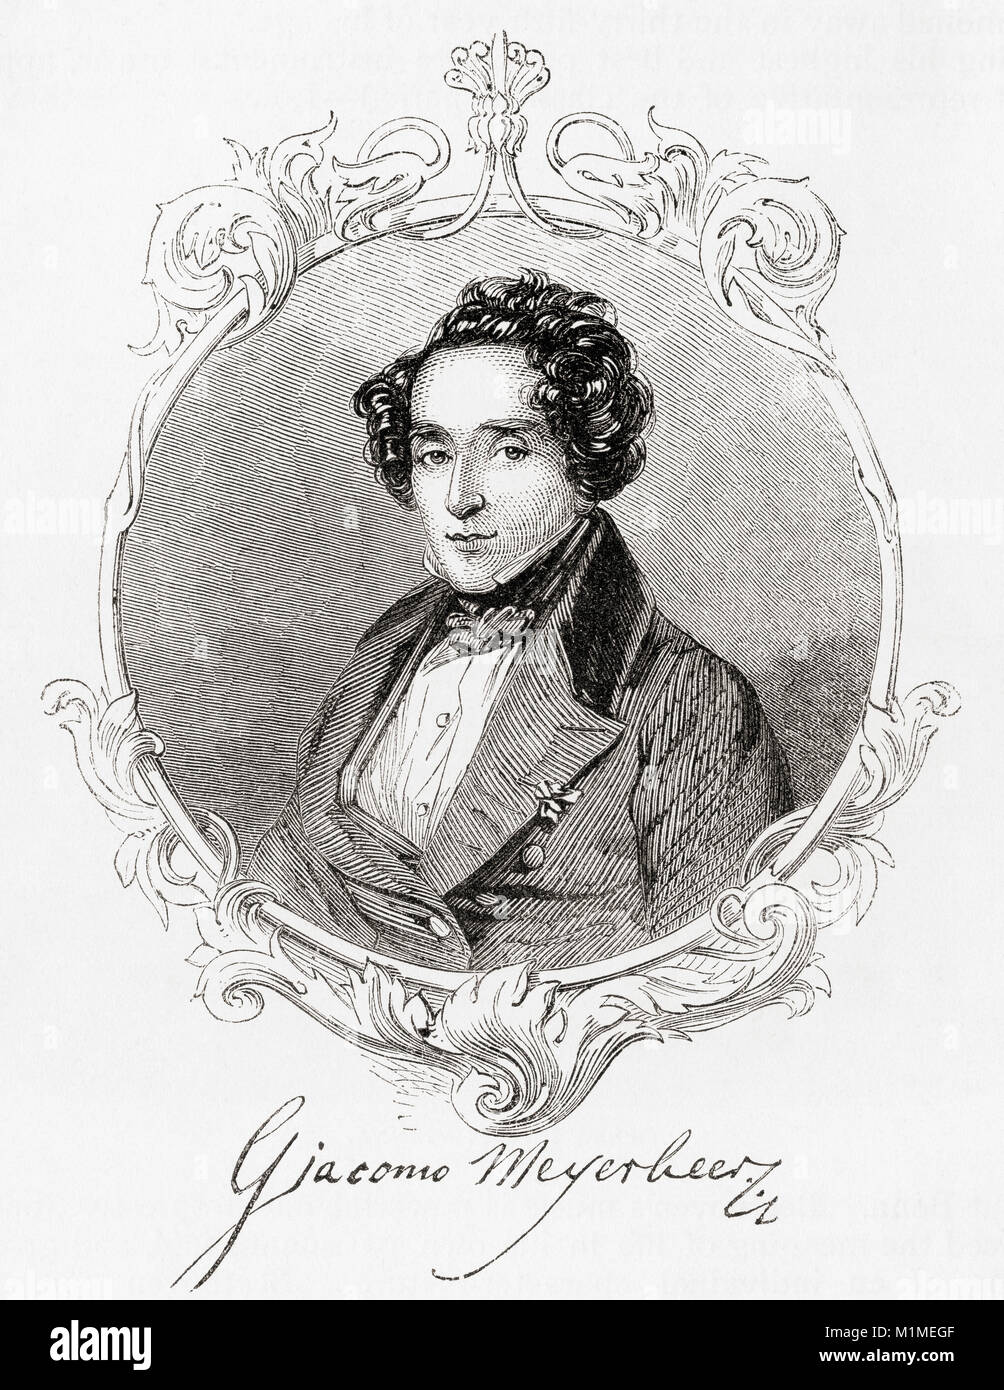 Giacomo Meyerbeer, born Jacob Liebmann Beer, 1791 – 1864.  German opera composer.  From Ward and Lock's Illustrated History of the World, published c.1882. Stock Photo